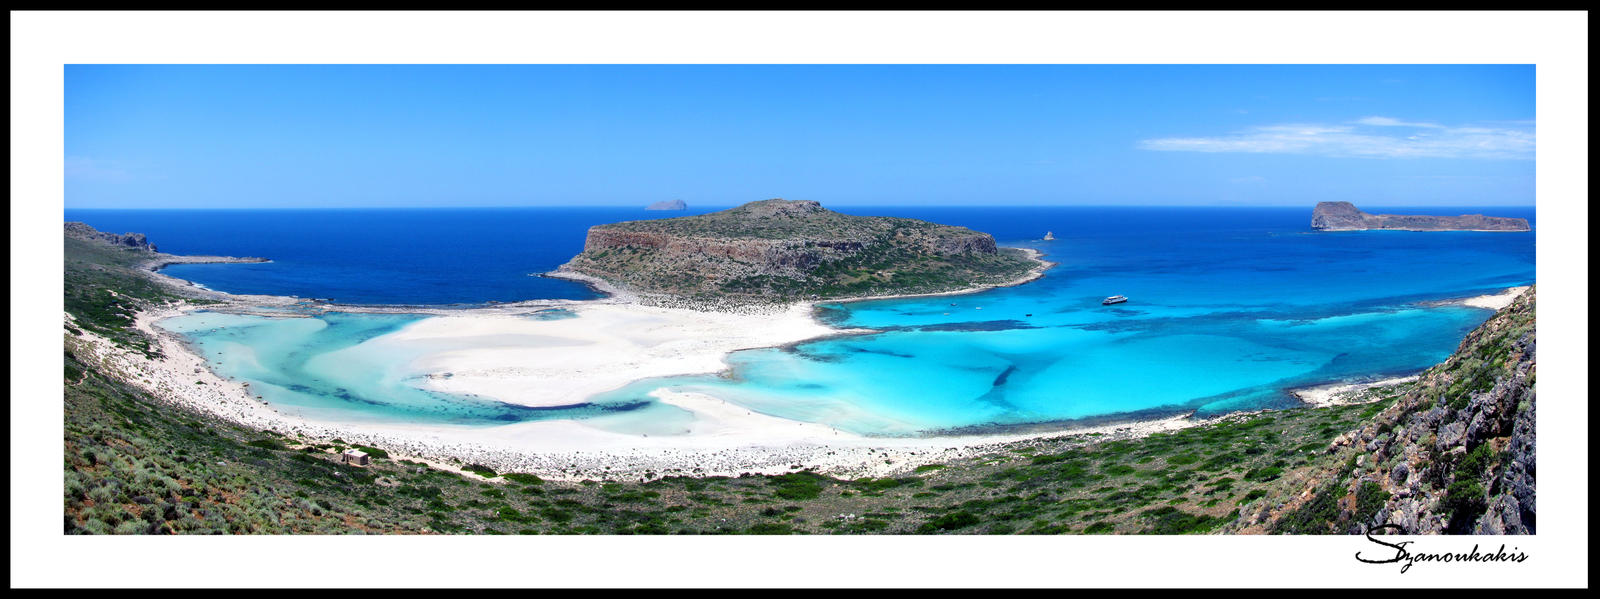 Balos Gramvousa Panorama by ArtSpawnGr on DeviantArt